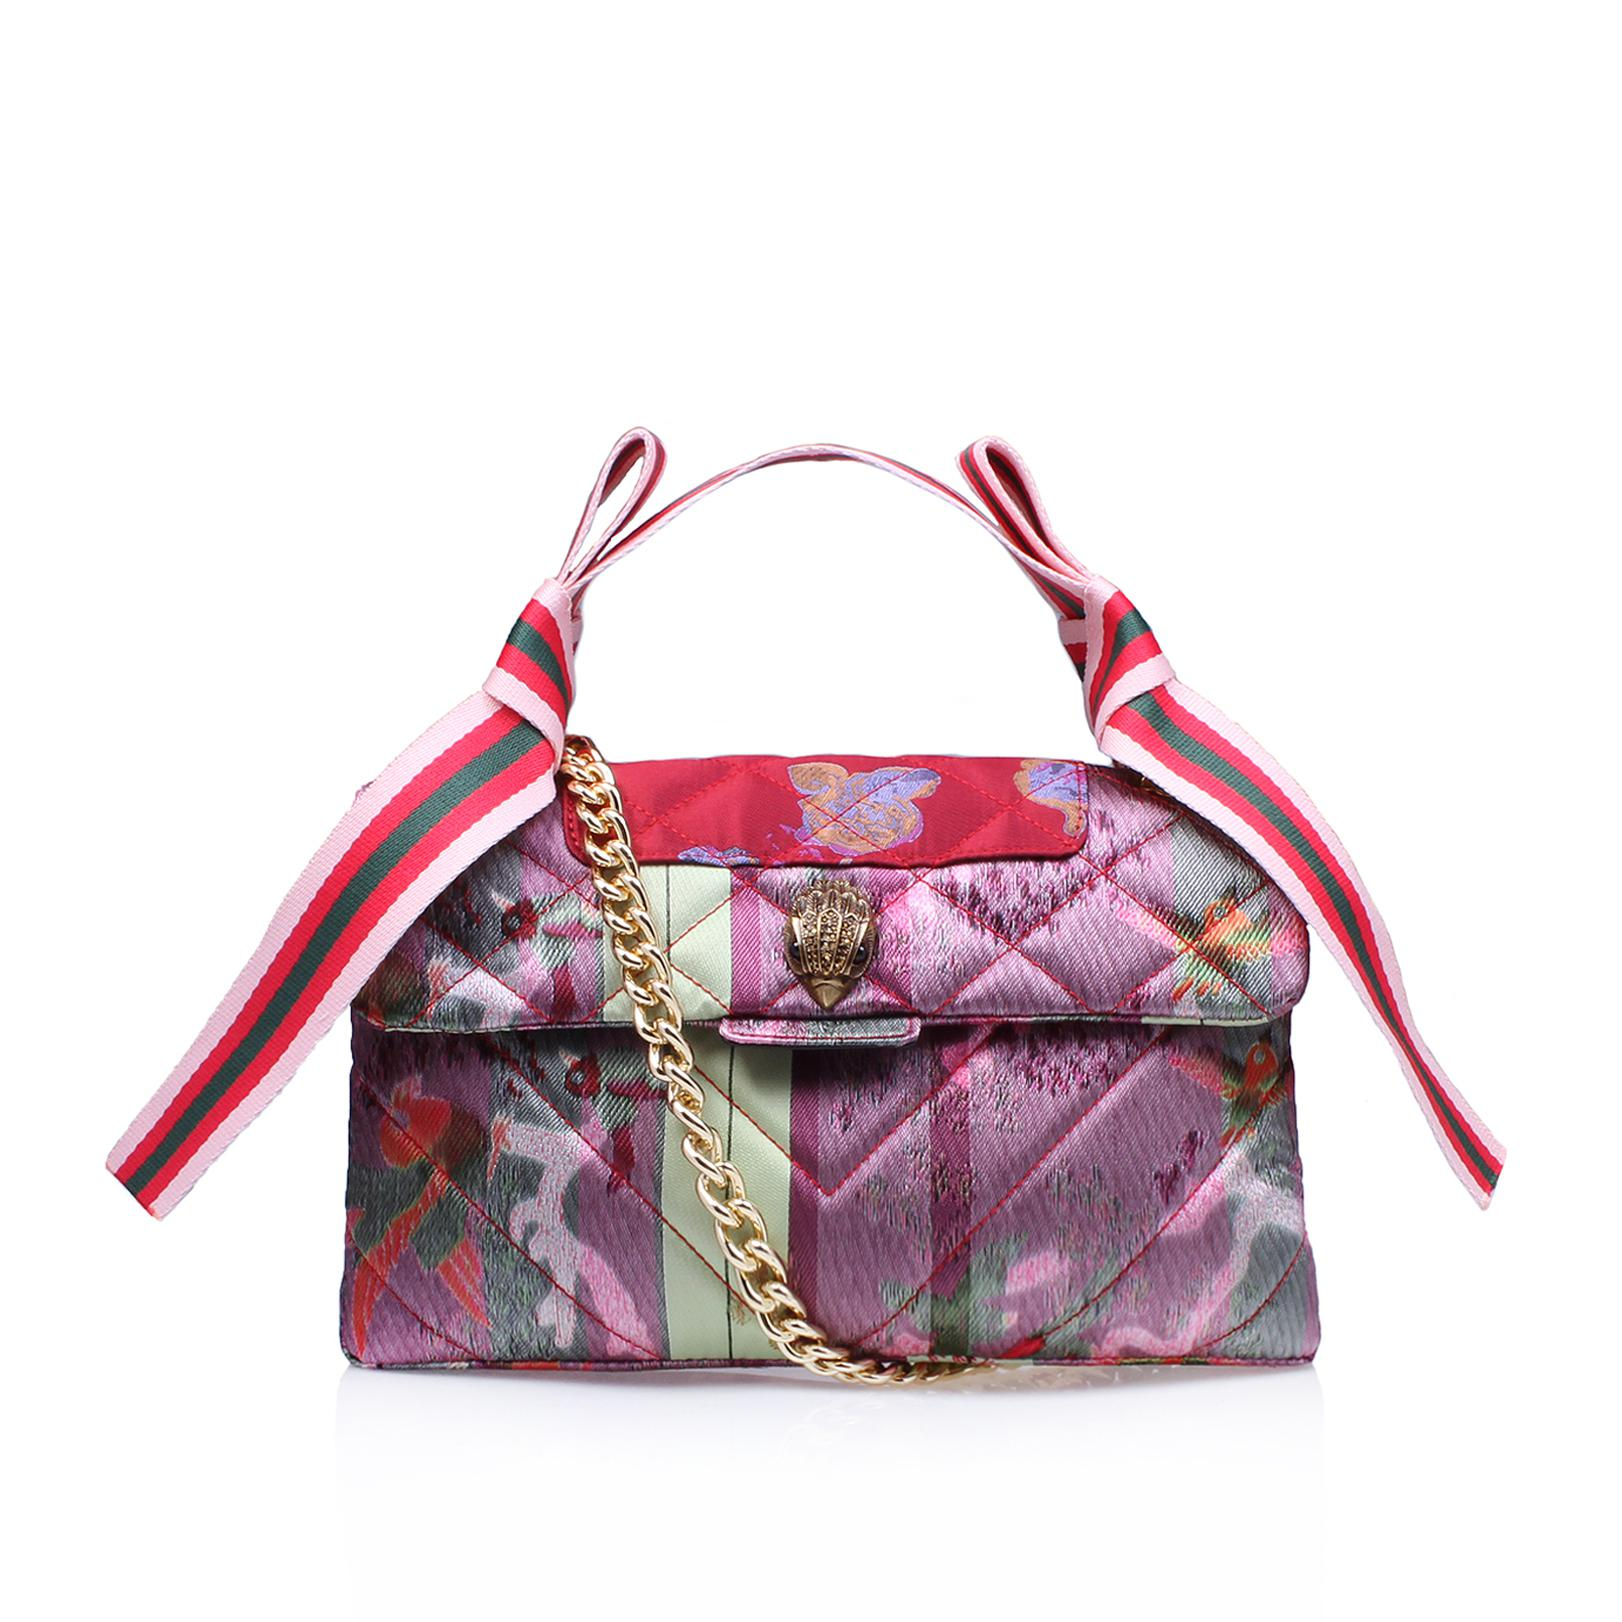 Kurt Geiger. Women s Fabric Kensington Bag In Fushia 0e15ee6084318